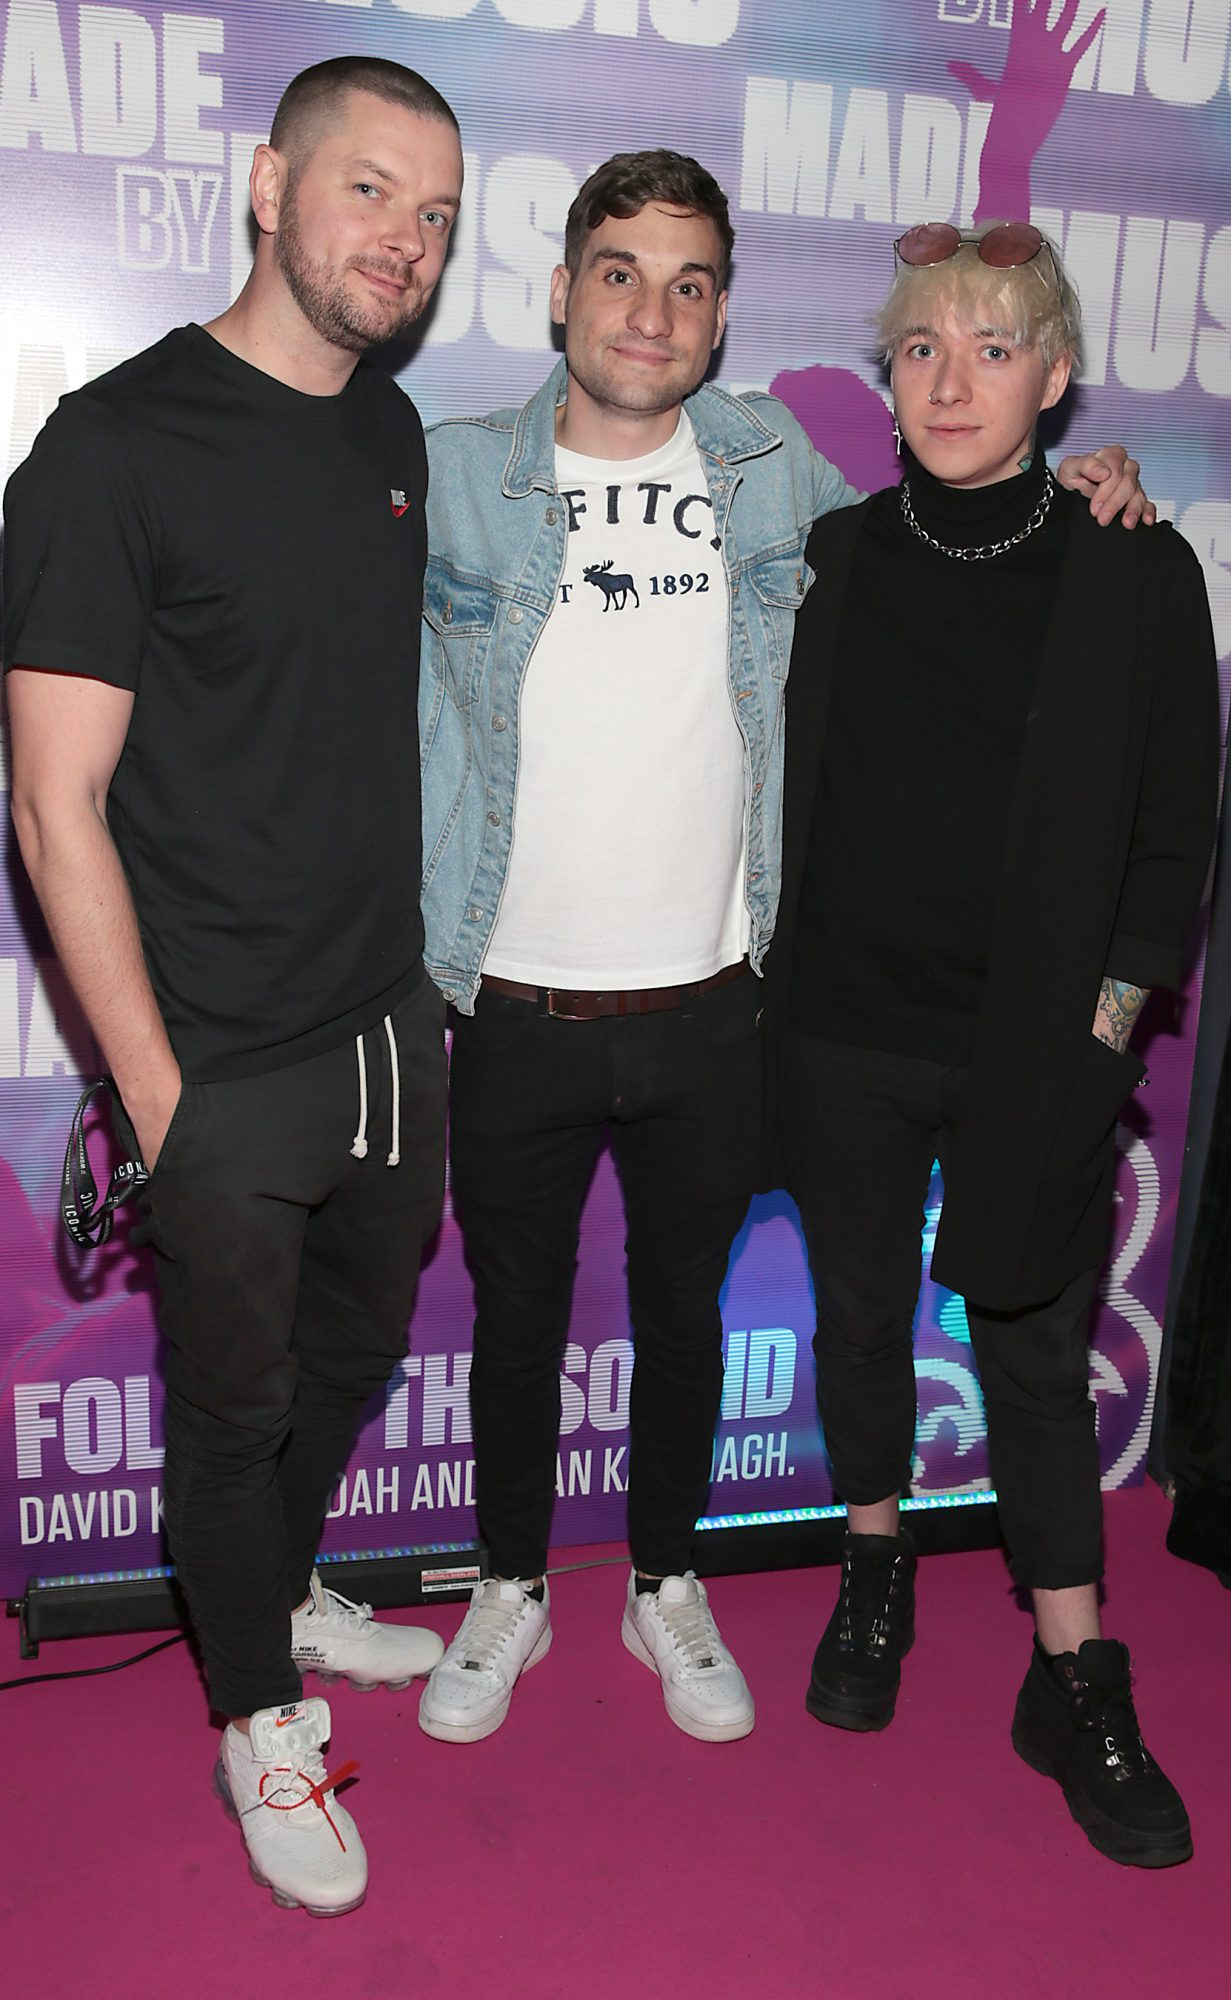 Shane Gillen, Greg O Donoghue and Owen McKenna pictured at the launch of Three's MadeByMusic 2019 at Lost Lane. Three Ireland has unveiled its plans for this year's 'Made by Music' initiative, an innovative move which seeks to demonstrate the human connections that music creates by collaborating with some of Ireland's best artists from the thriving Irish music scene. Picture: Brian McEvoy